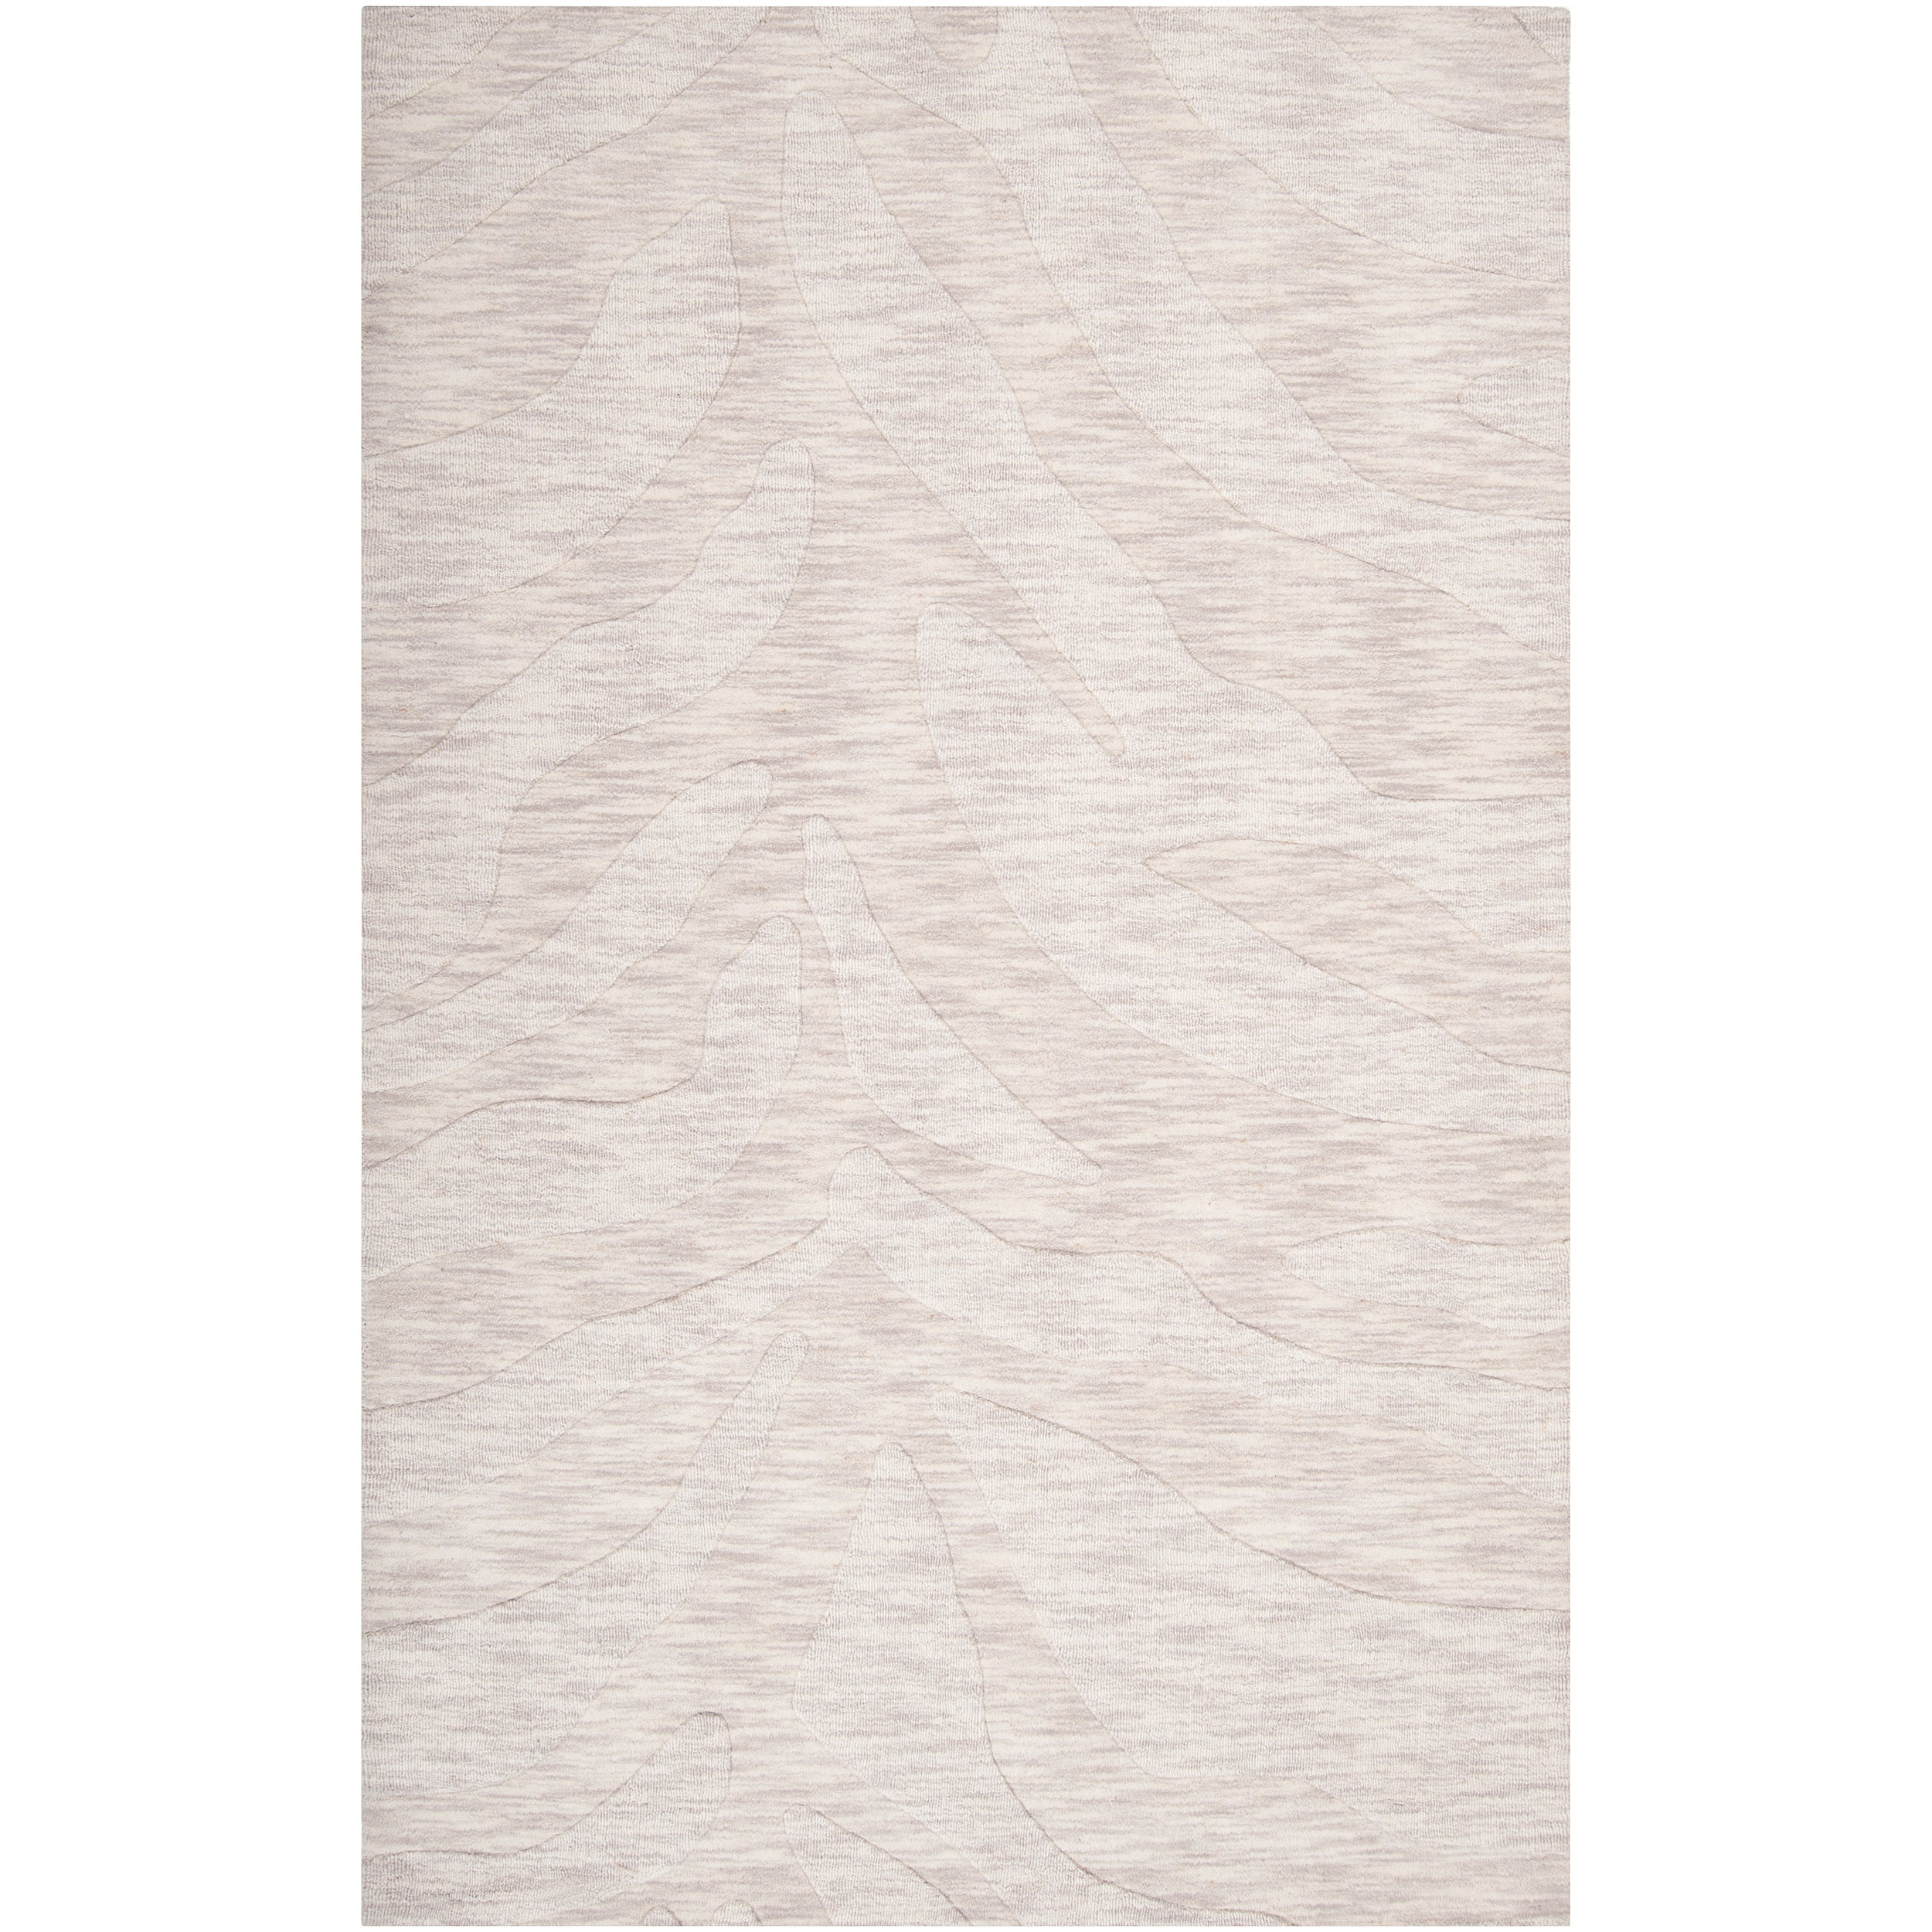 Hand-crafted Solid White Casual Mystique Wool Rug (3'3 x 5'3)